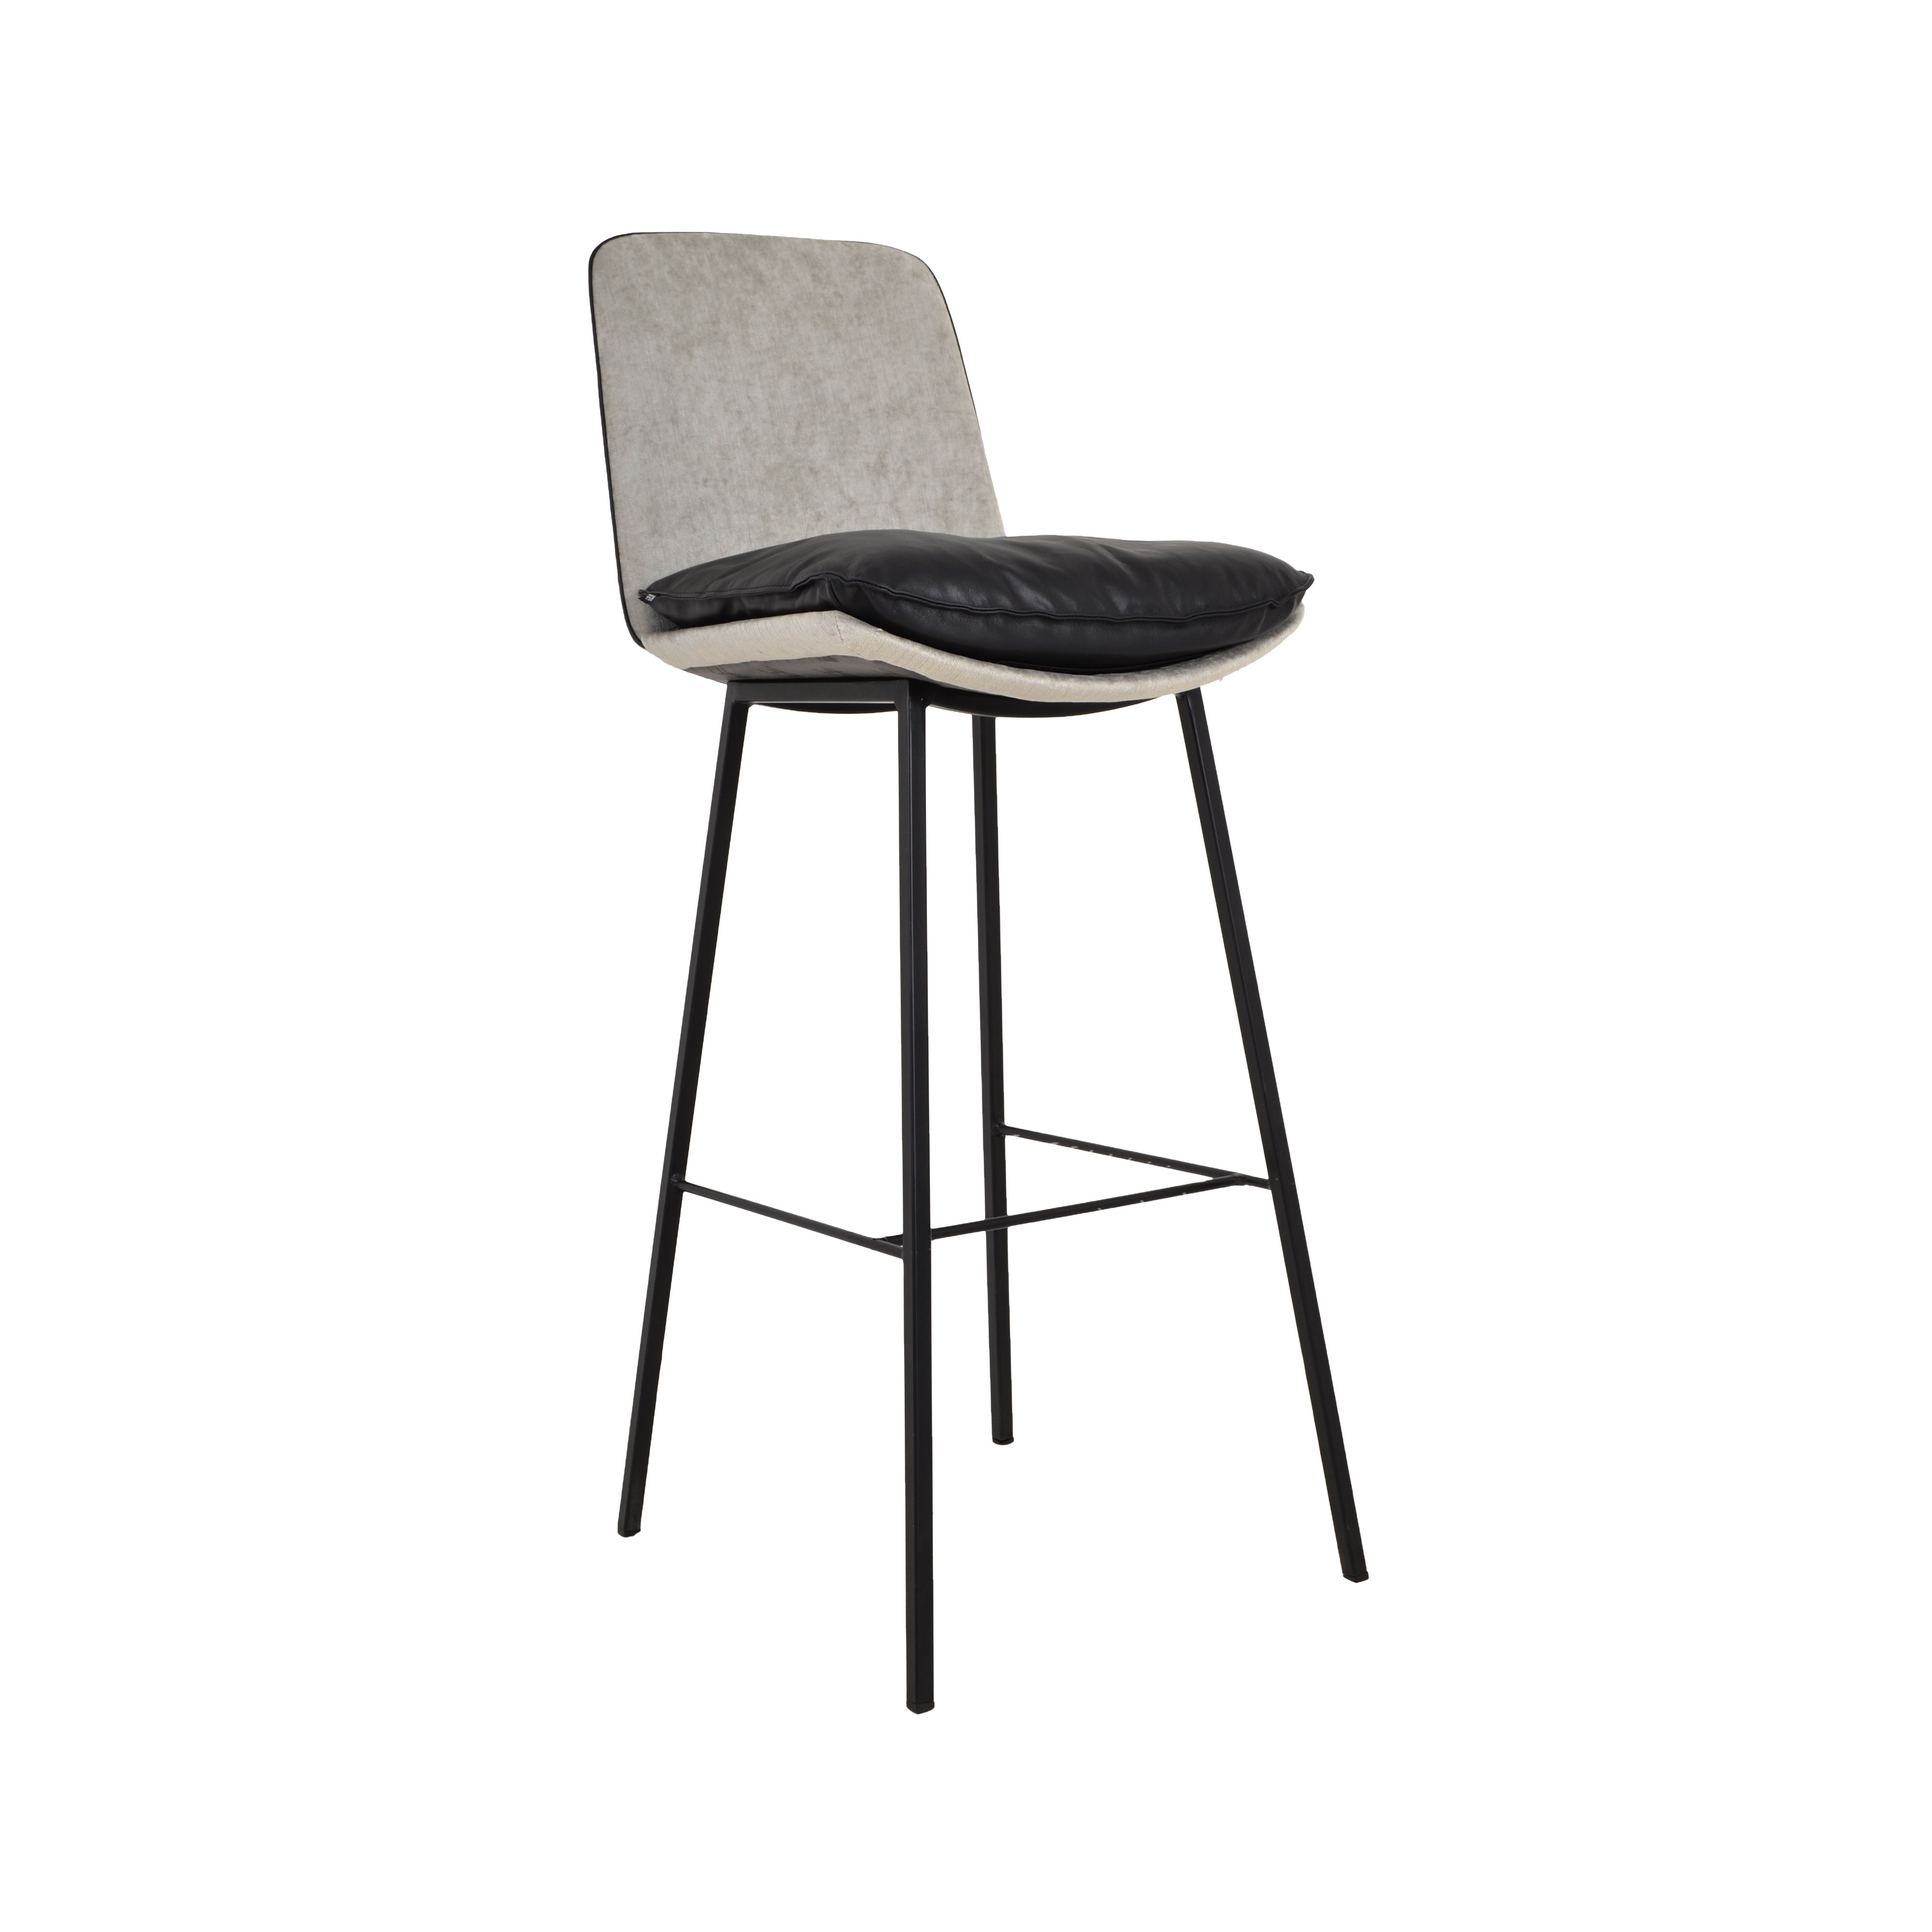 Kff Lhasa Barstool With Swivel And Adjustable Height Or With 4 Leg Designed By Andrei Munteanu High Dining Kff Lhasa B Bar Stools Designer Bar Stools Stool